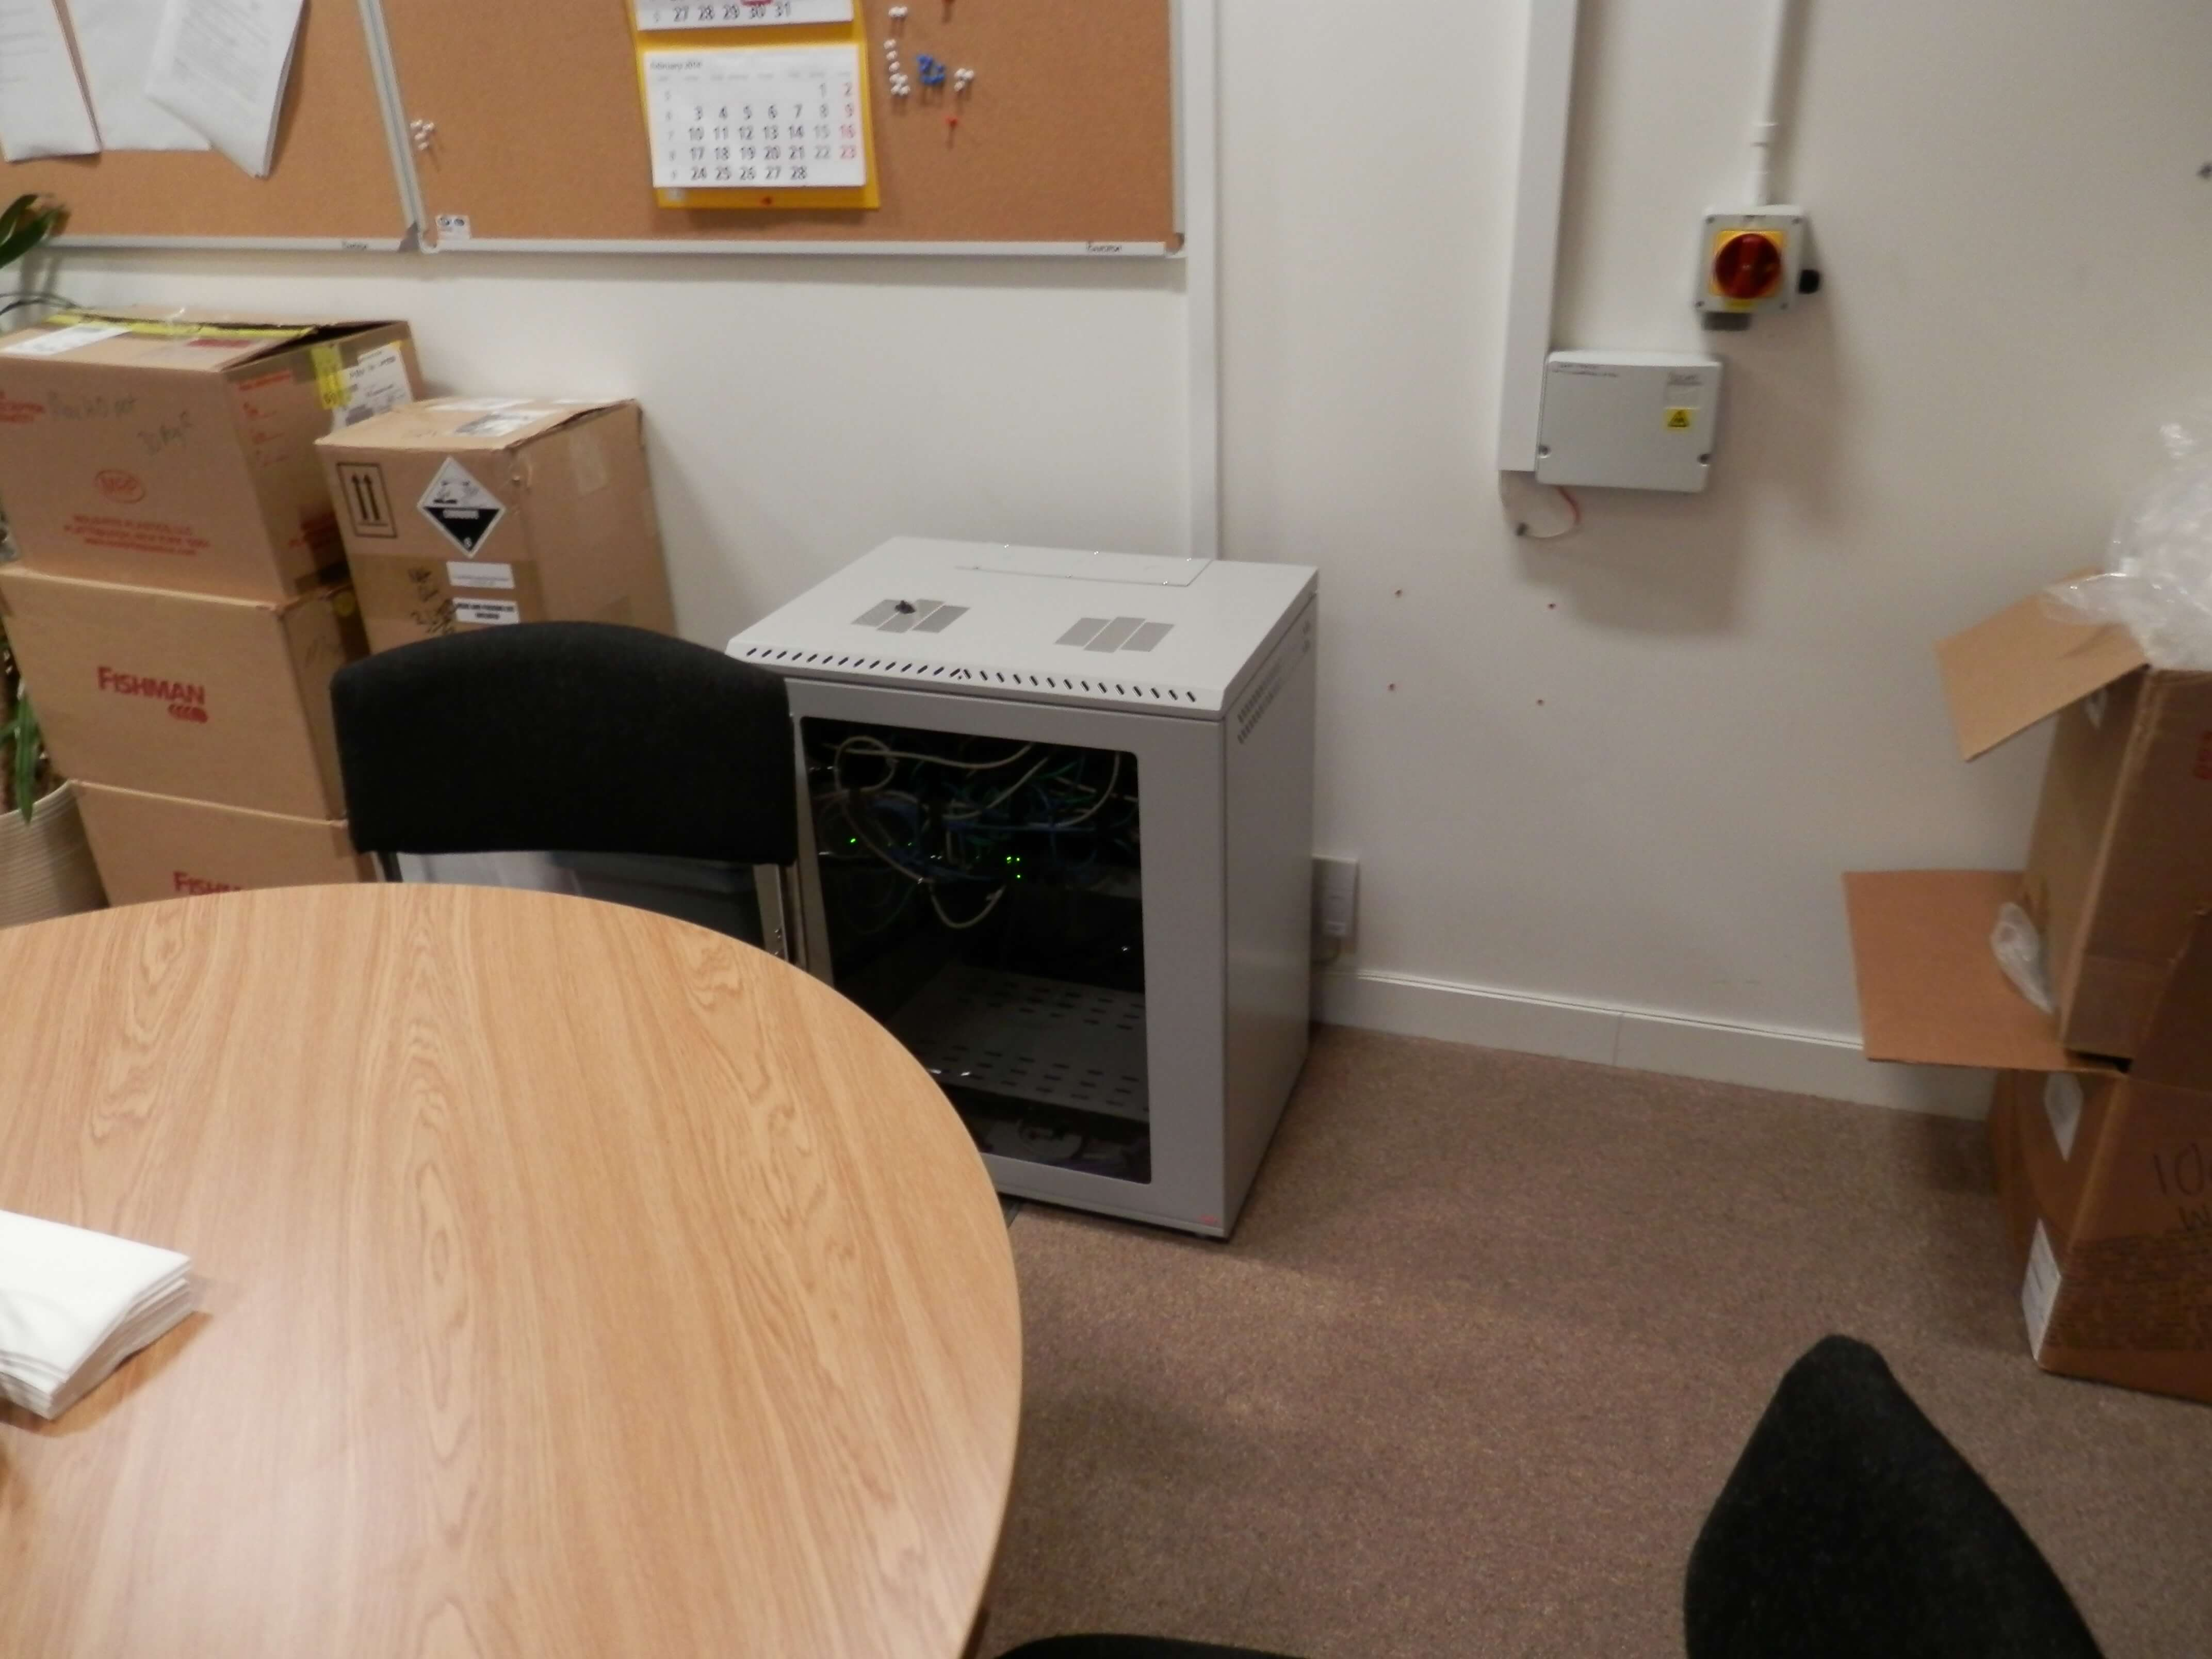 Comms cabinet to be moved